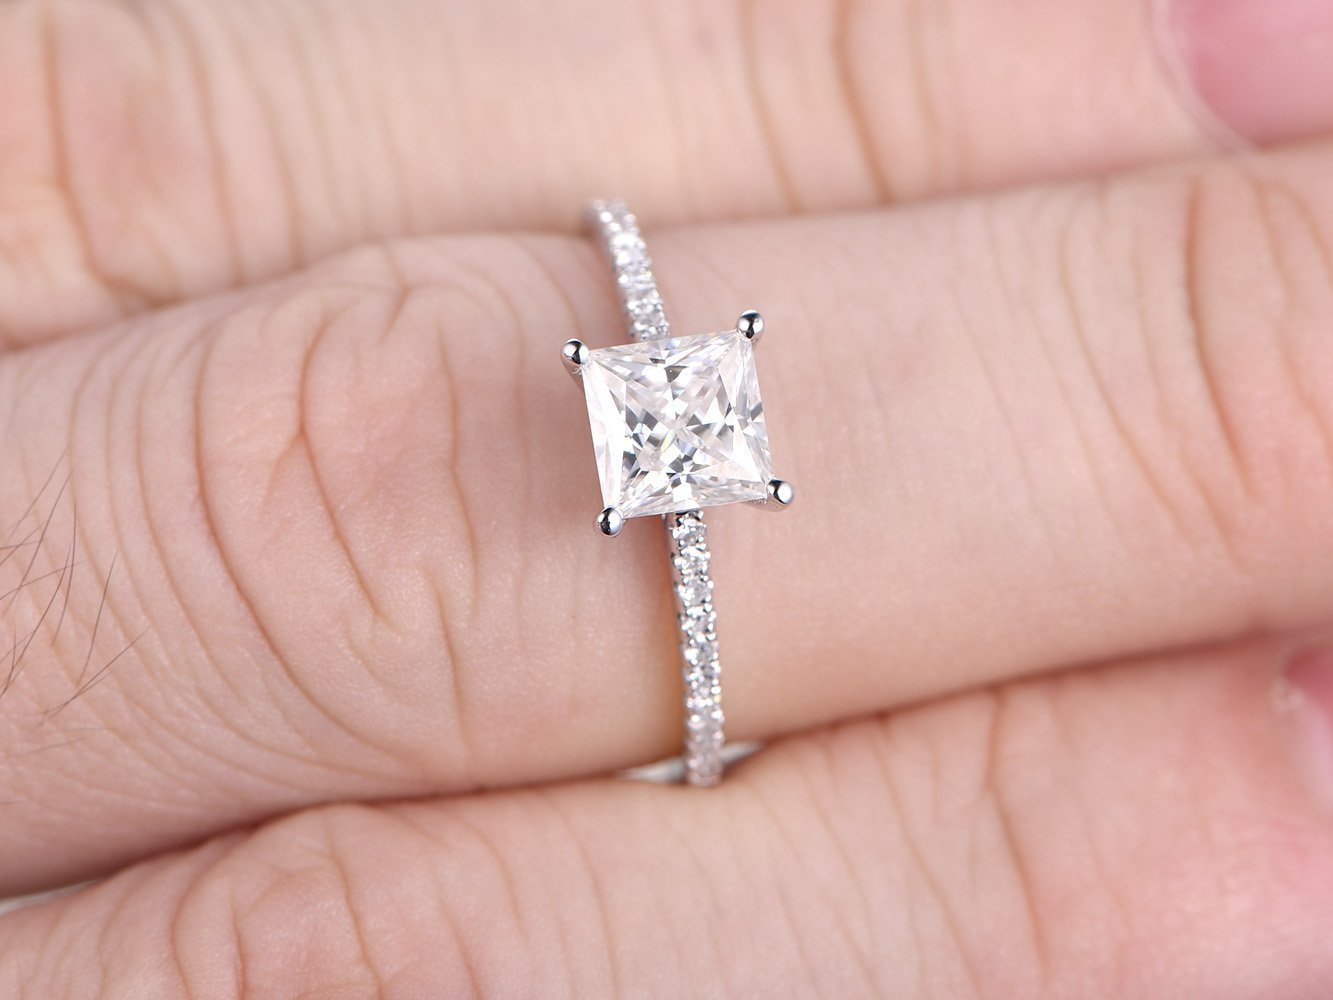 Amazon.com: 5.5mm Princess Cut Moissanite Solid 14k White Gold ...